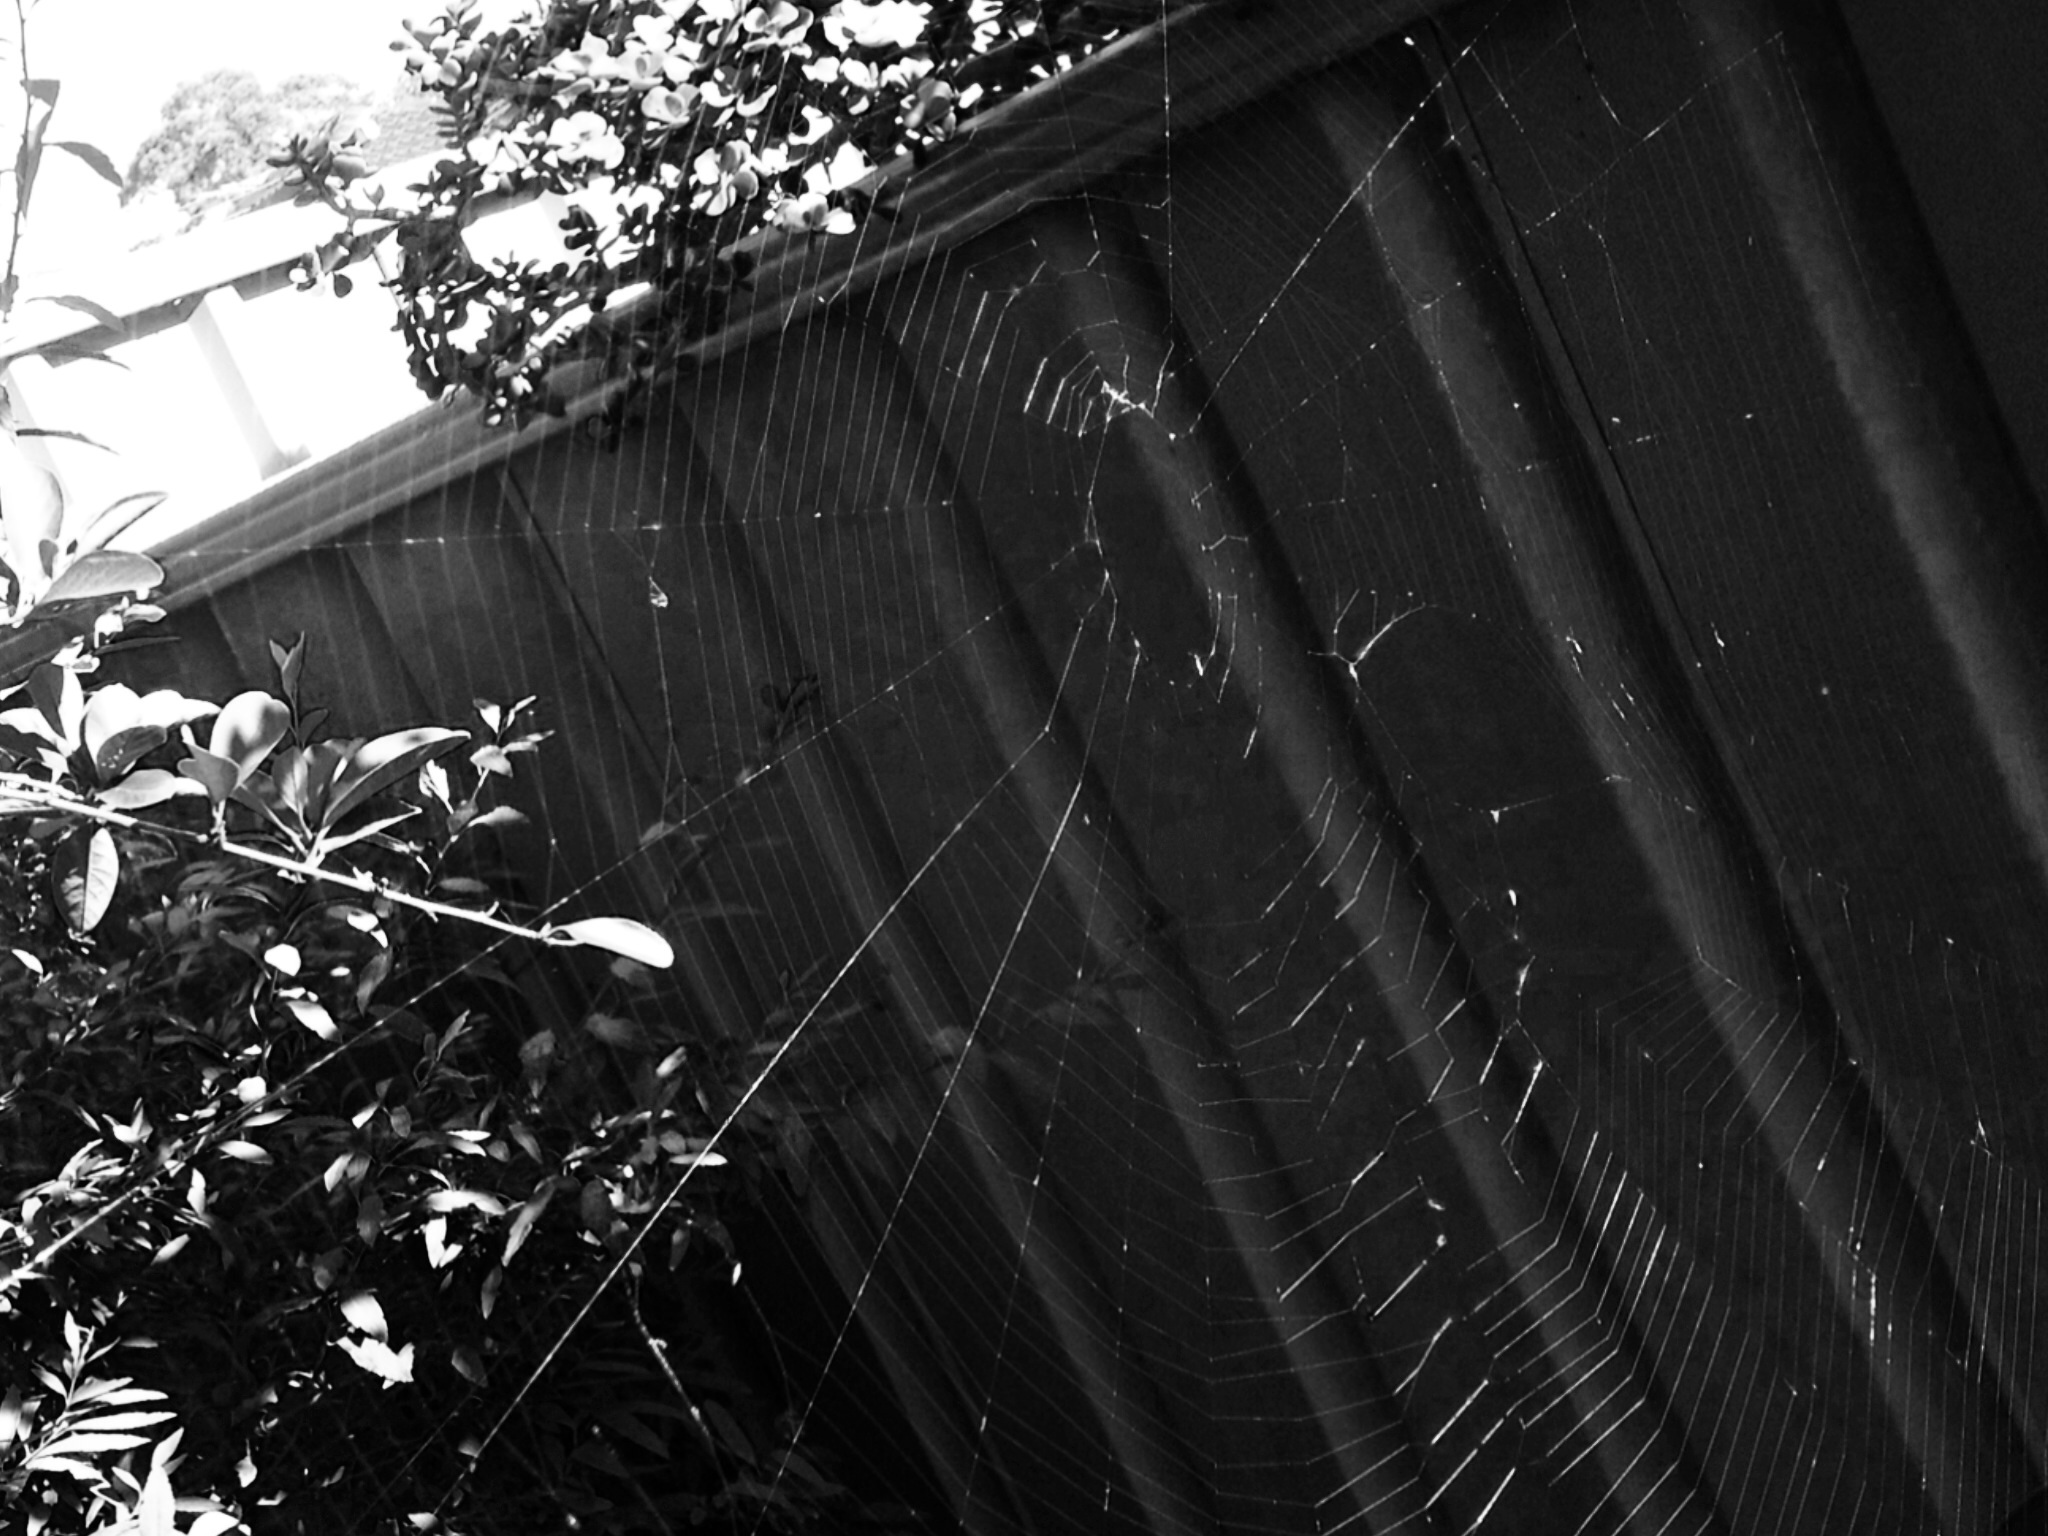 Contentment, simple living, simple life, nature walk, spider web, orb spider